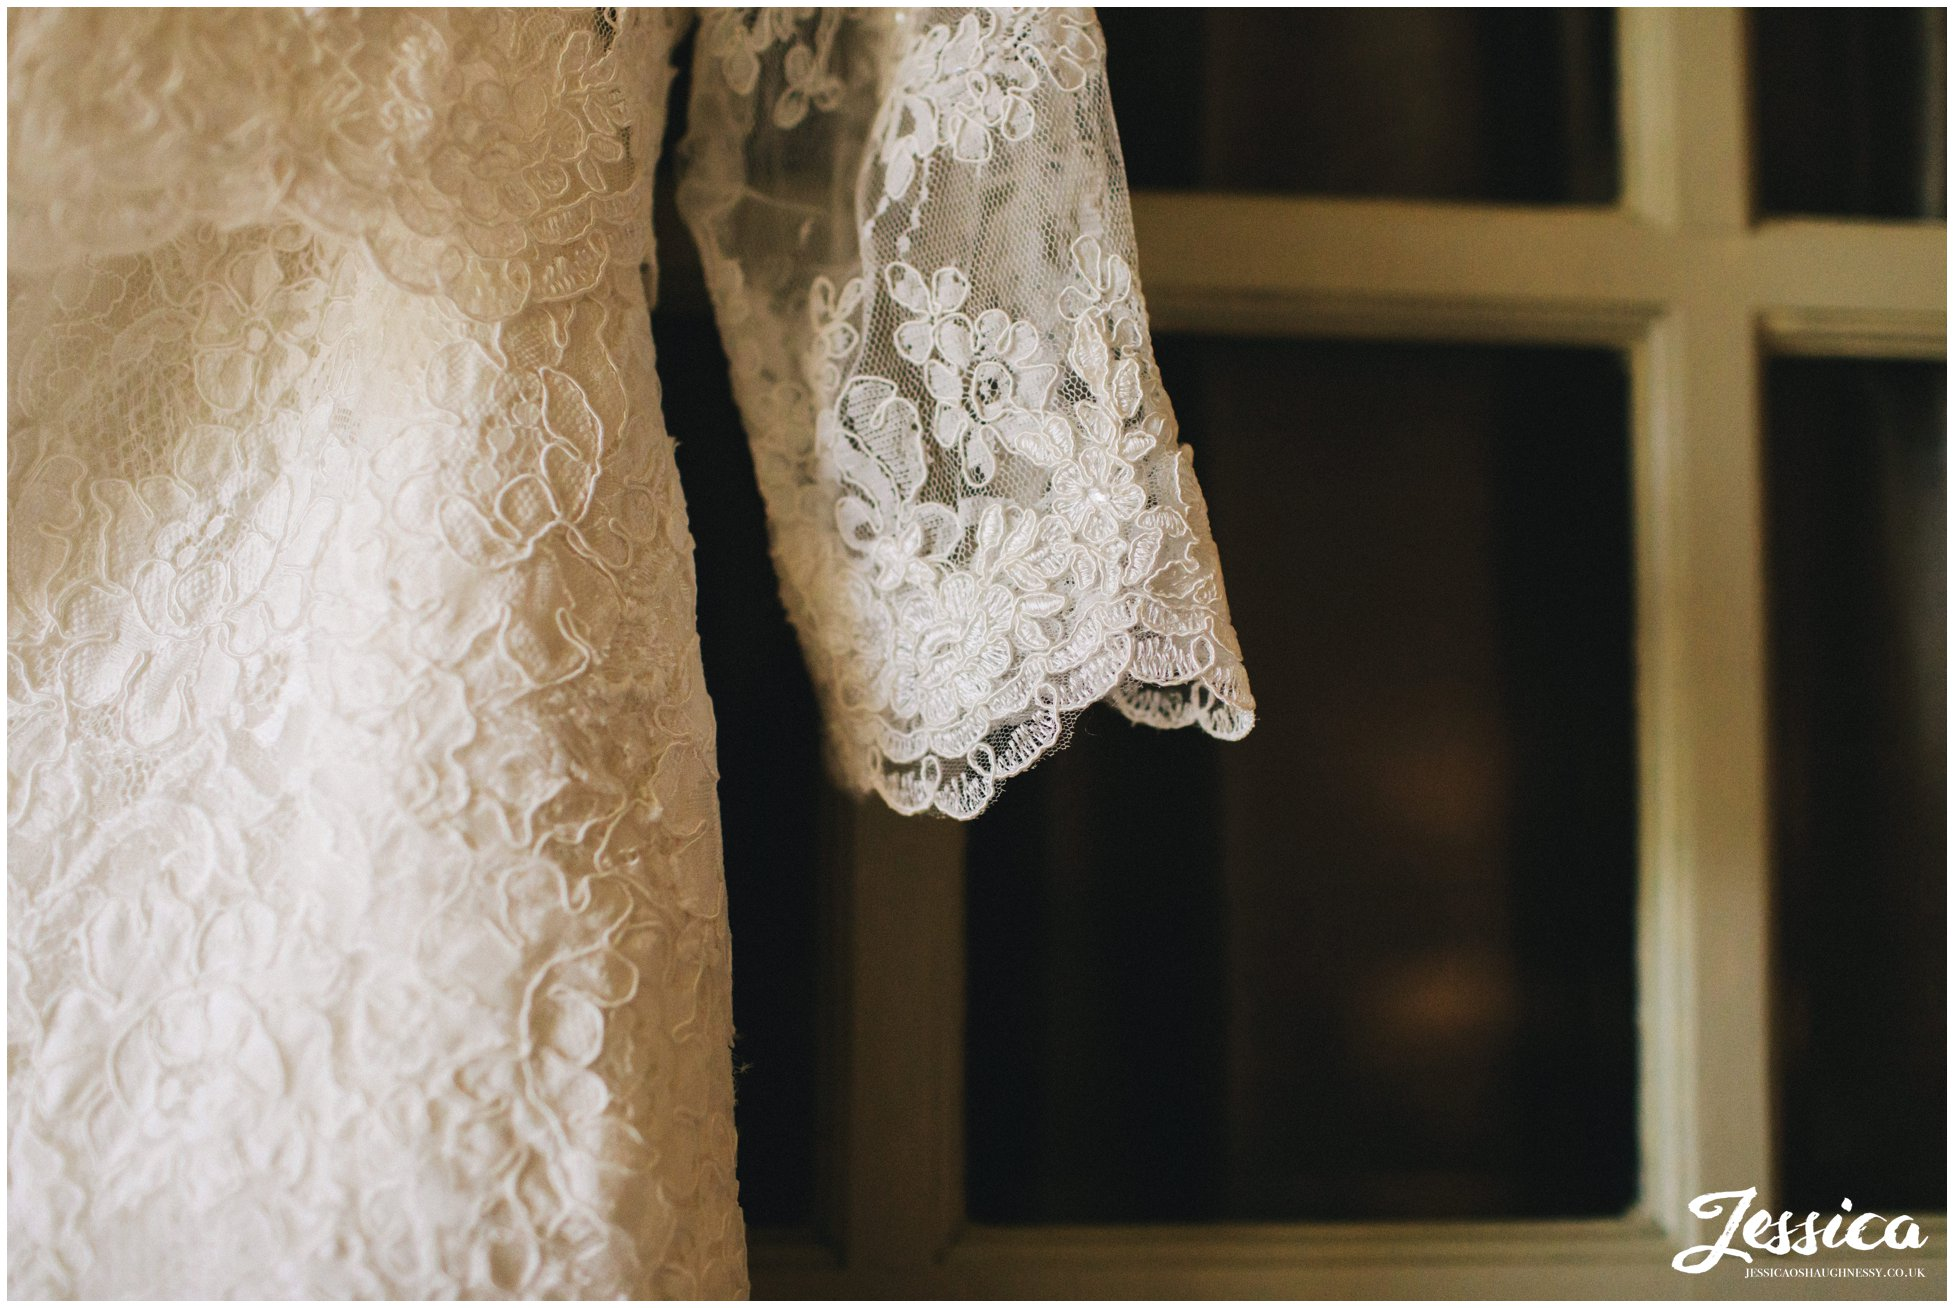 detail shot the of lace of the brides wedding dress